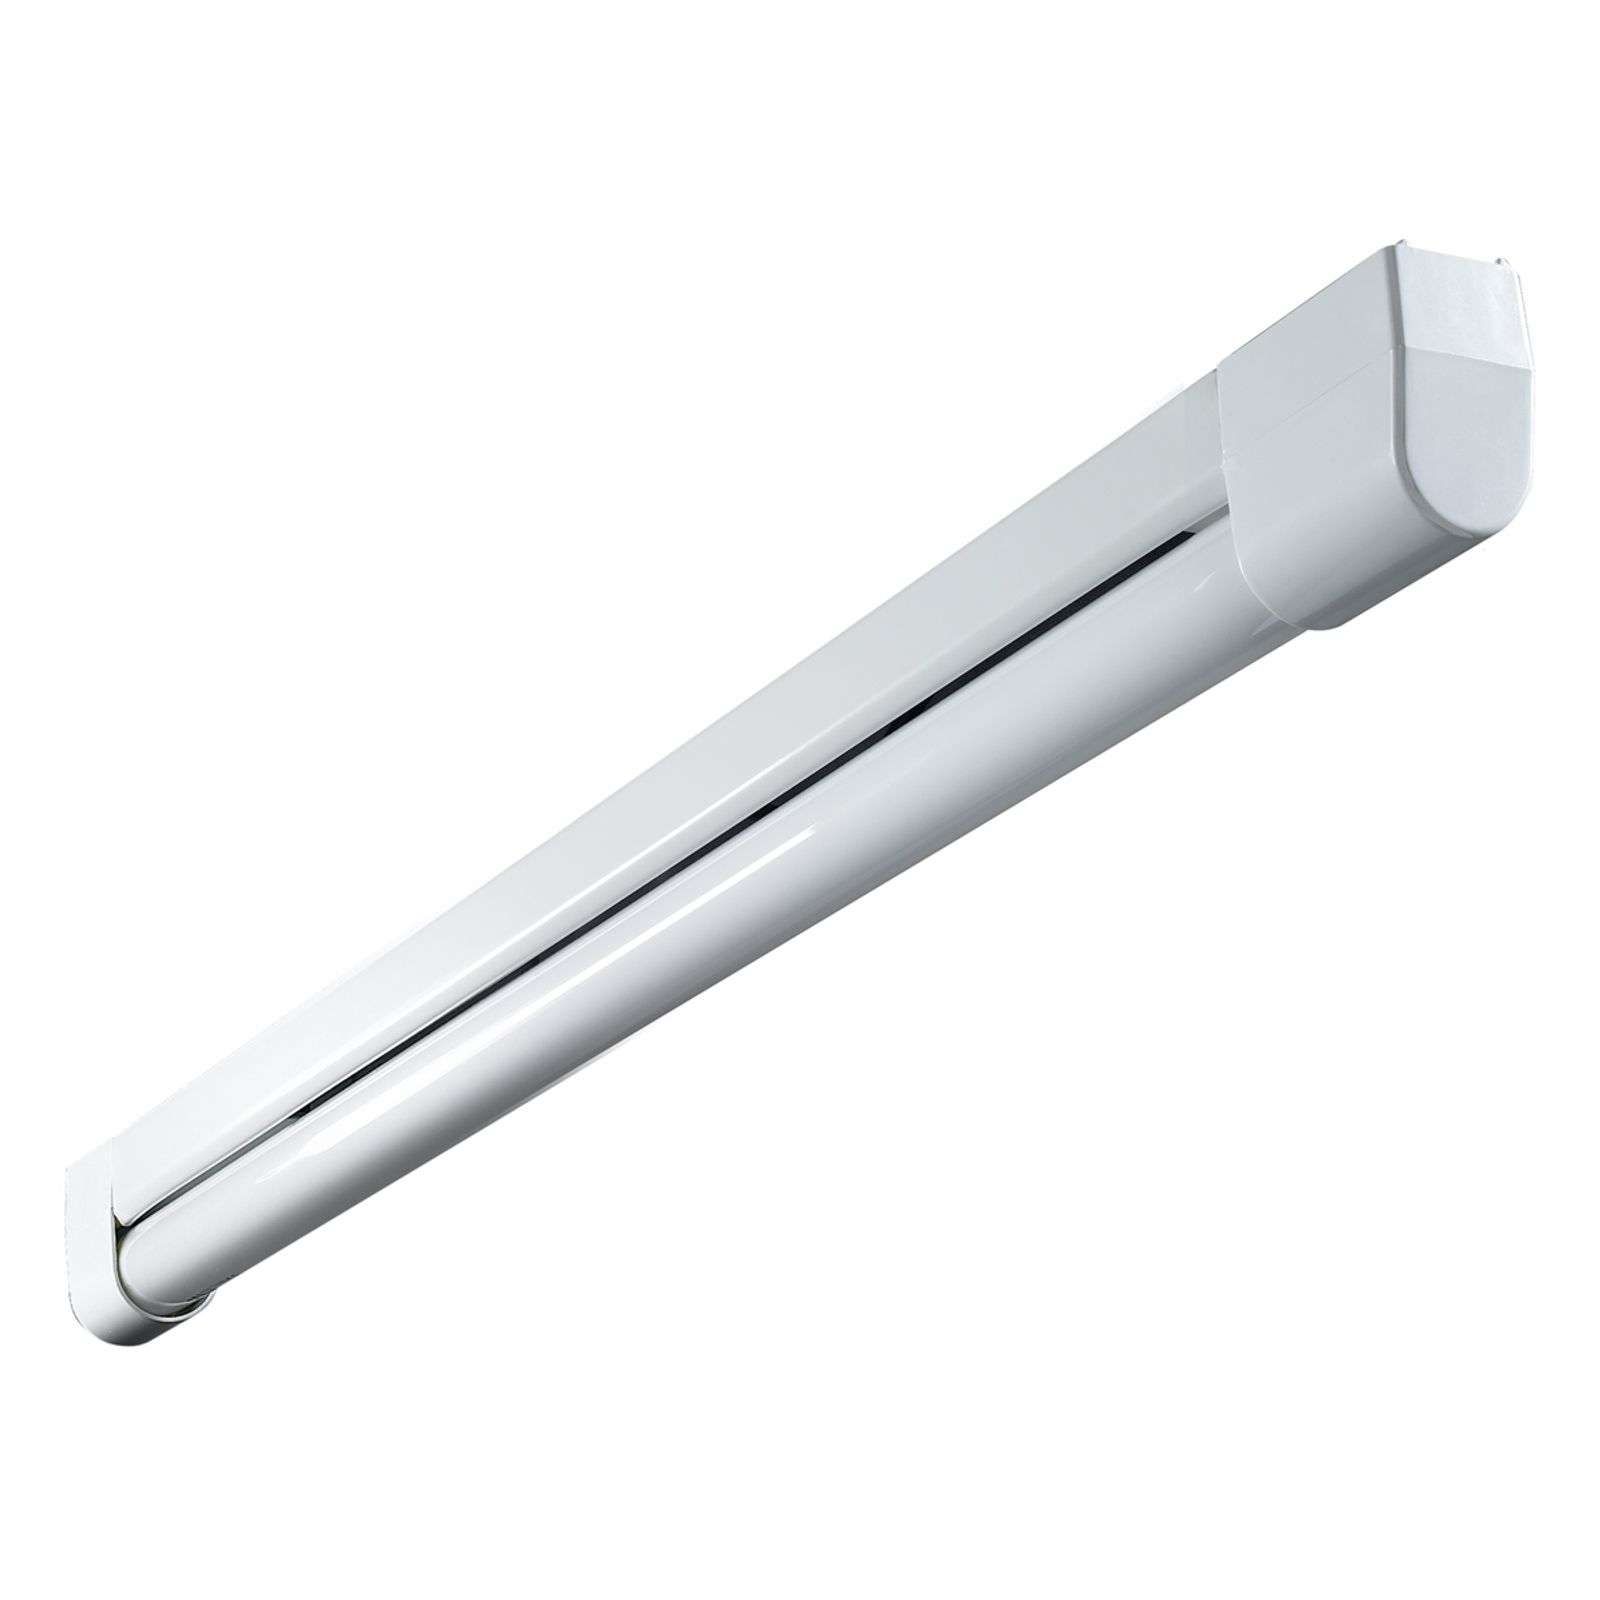 Light strip for under-cabinet light, length 64 cm